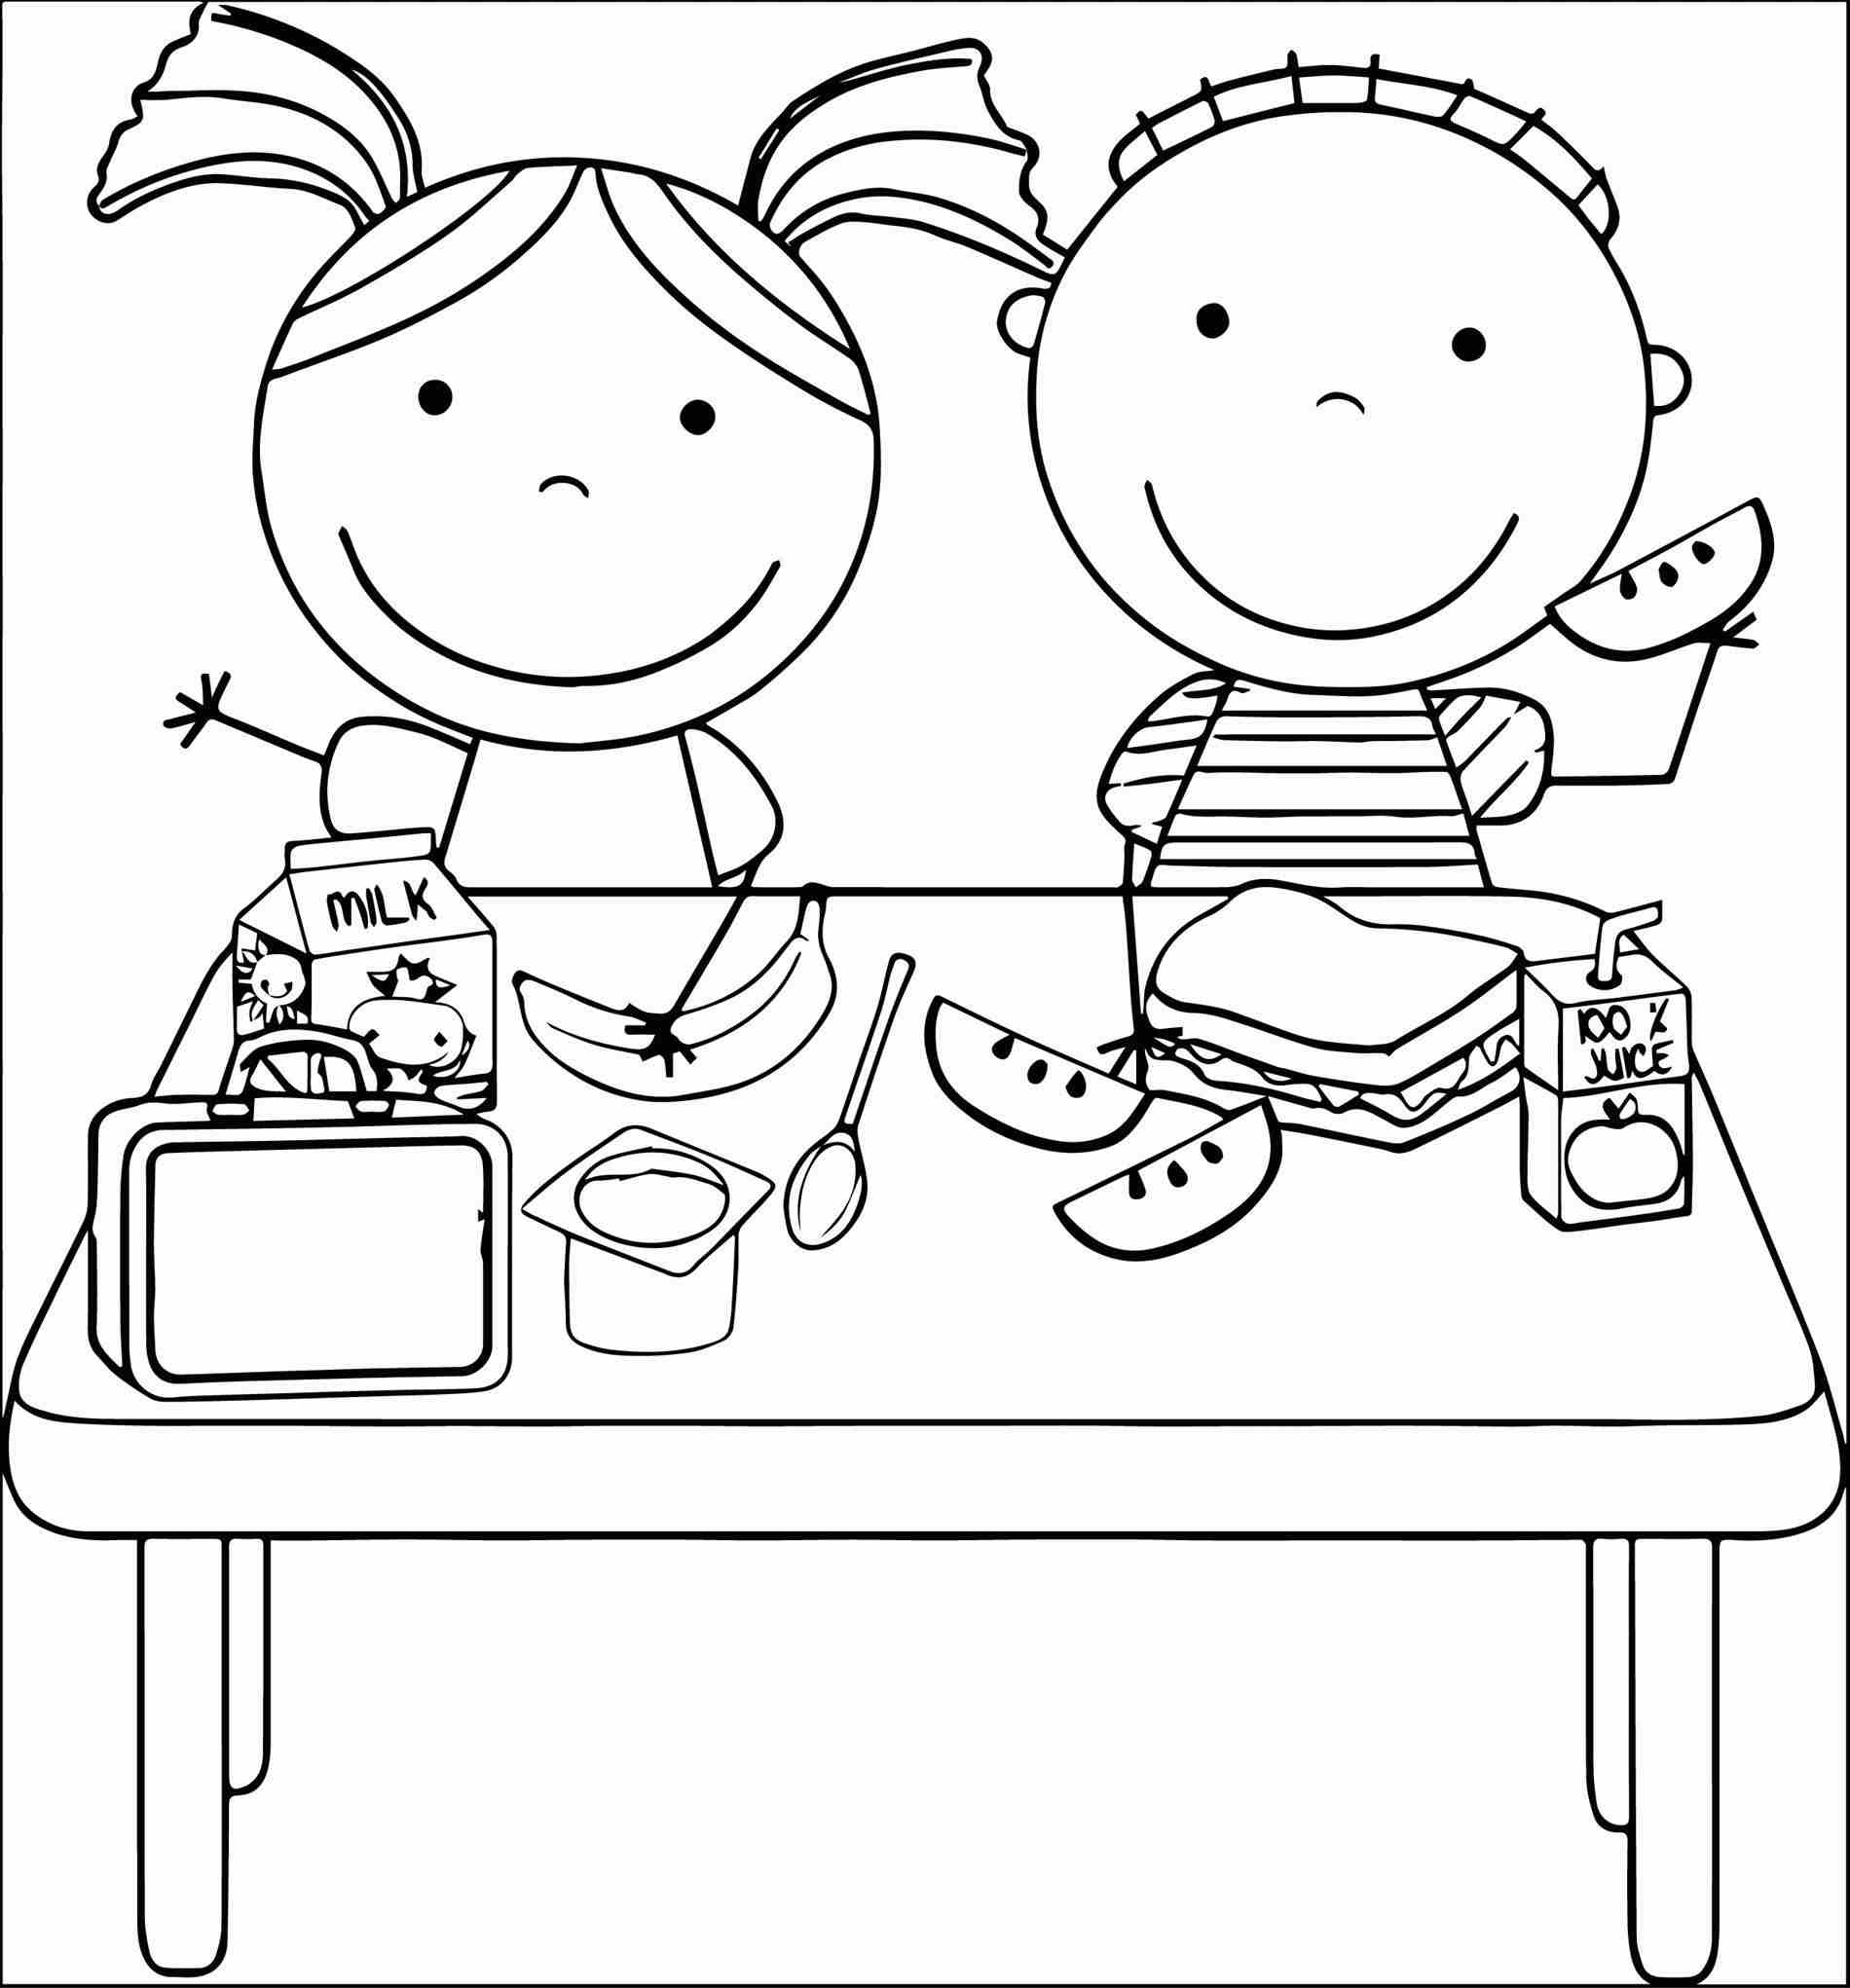 Nutritious food clipart black and white 2 » Clipart Station